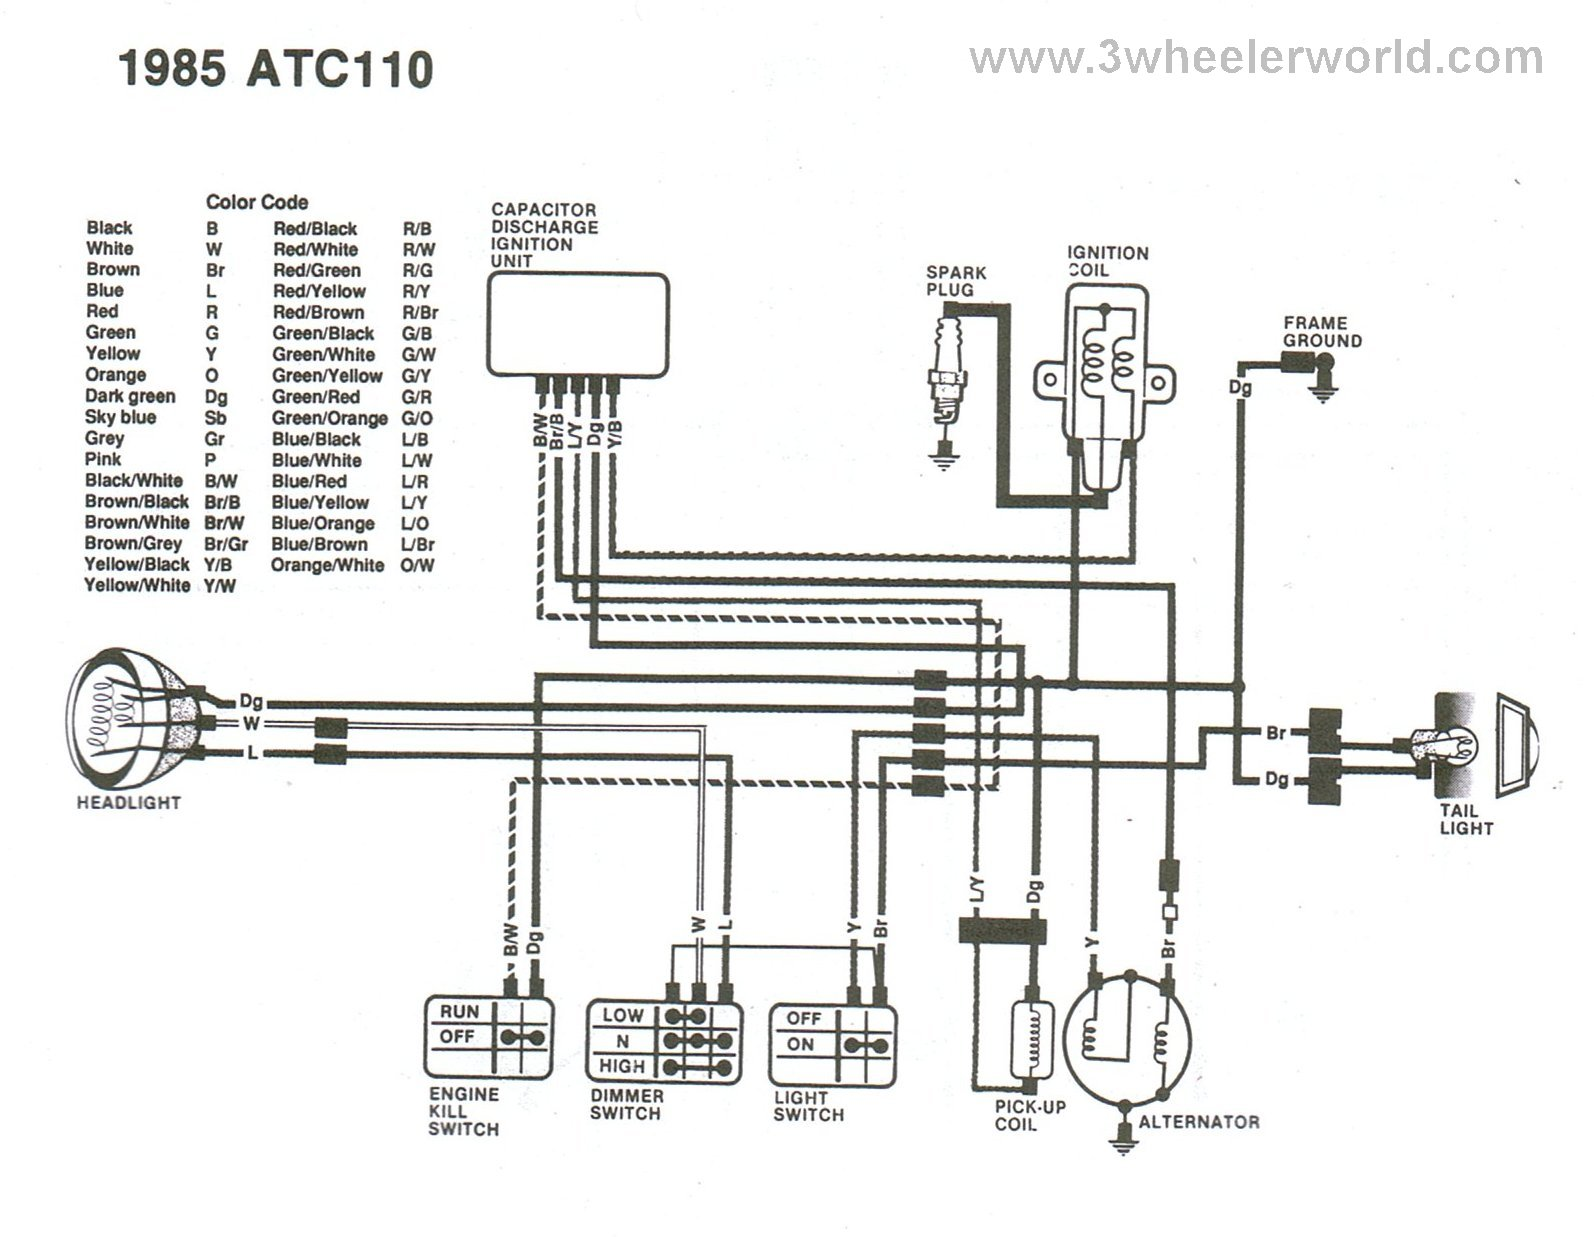 3 wheeler world tech help honda wiring diagrams rh 3wheelerworld com